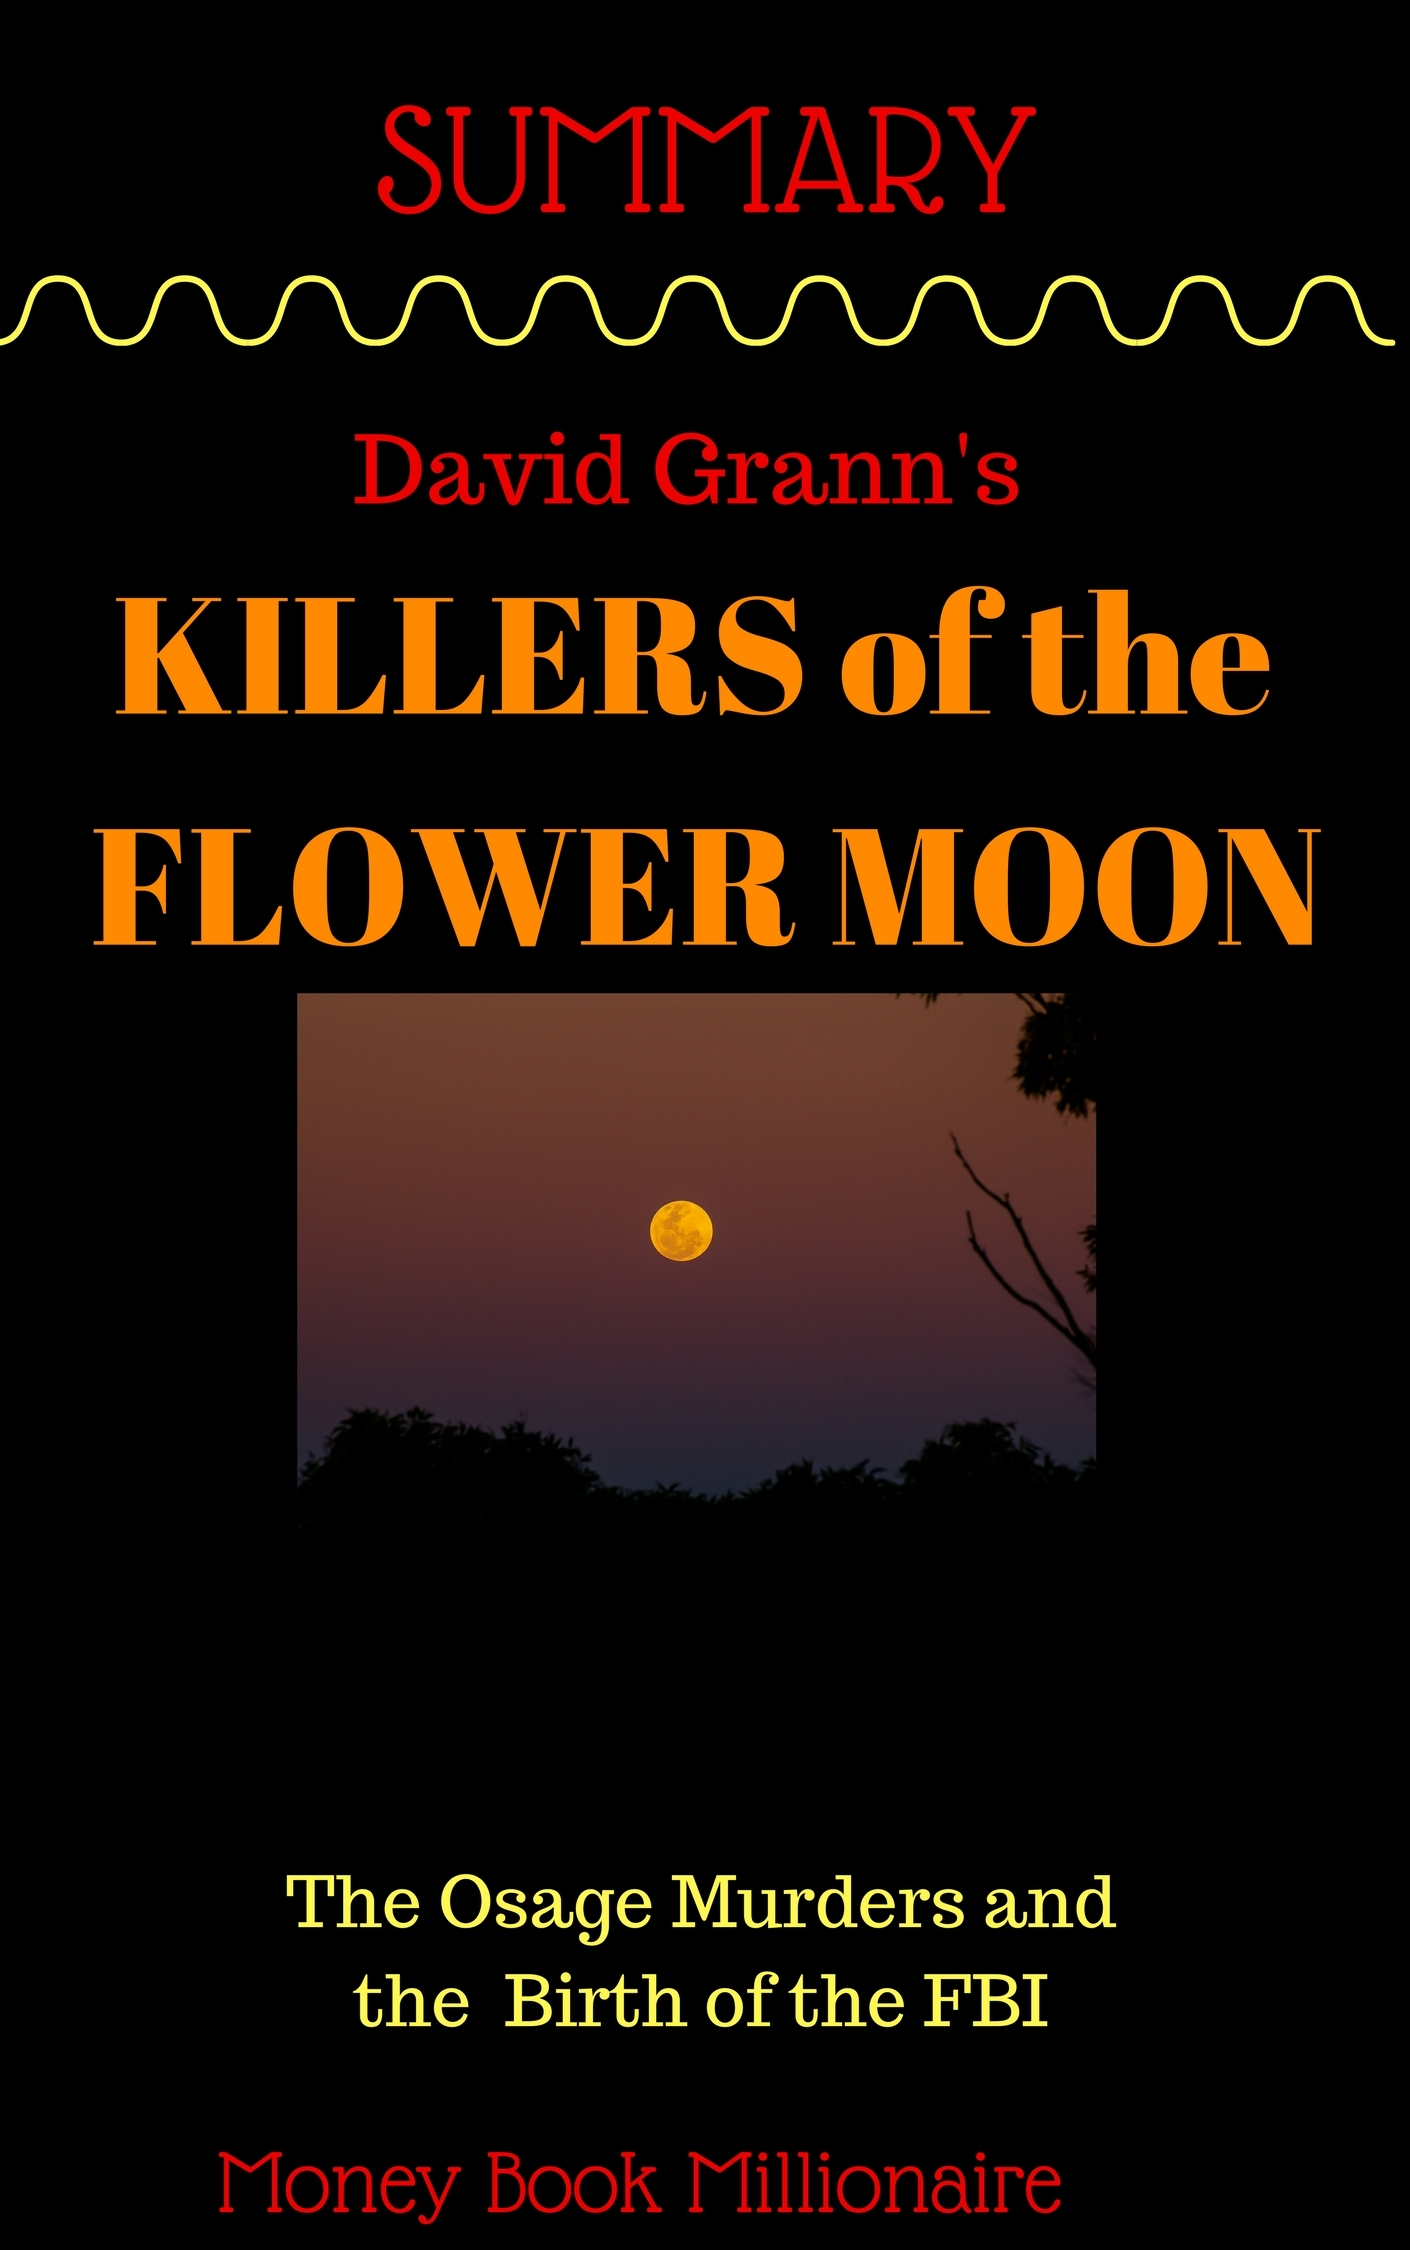 Summary: Killers of the Flower Moon: The Osage Murders and the Birth of the FBI BY DAVID GRANN